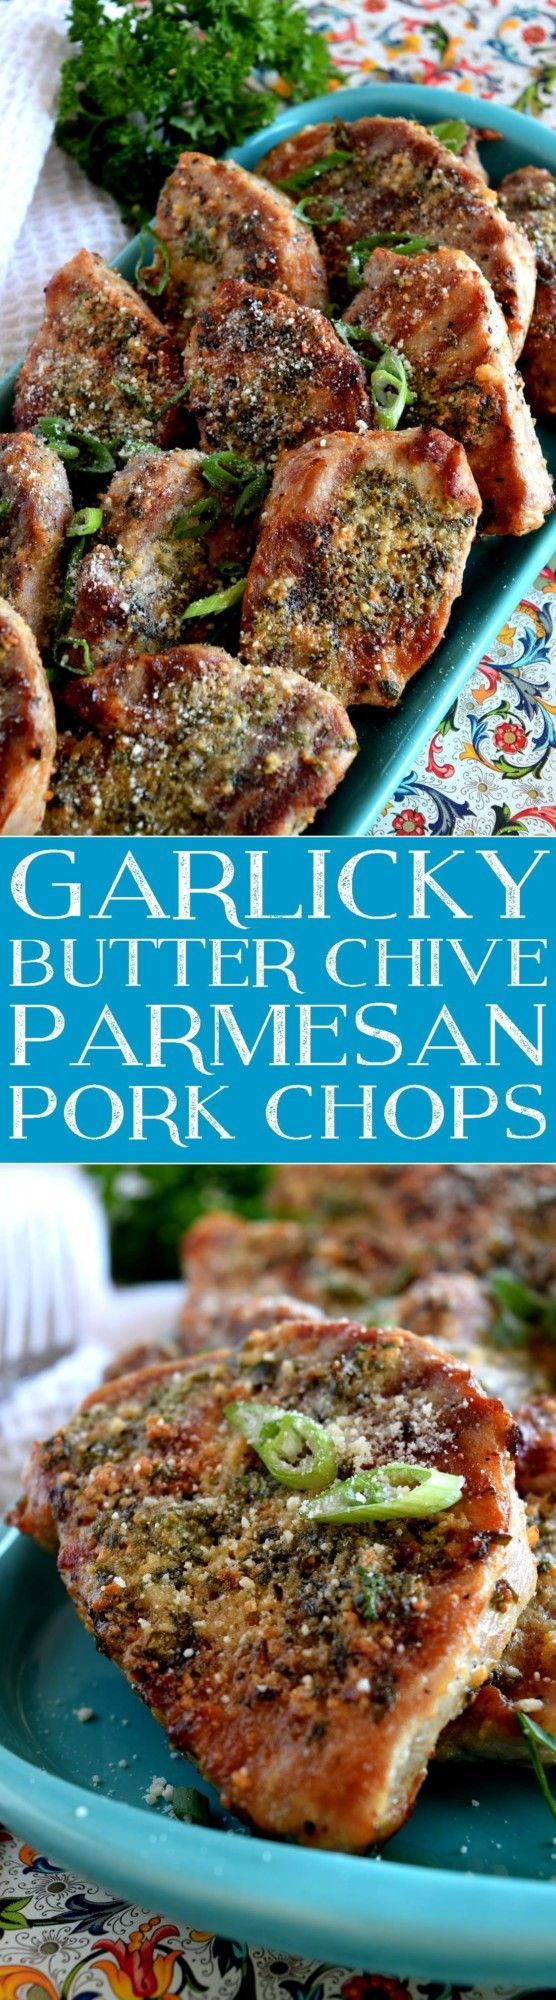 Garlicky Butter Chive Parmesan Pork Chops - Lord Byron's Kitchen